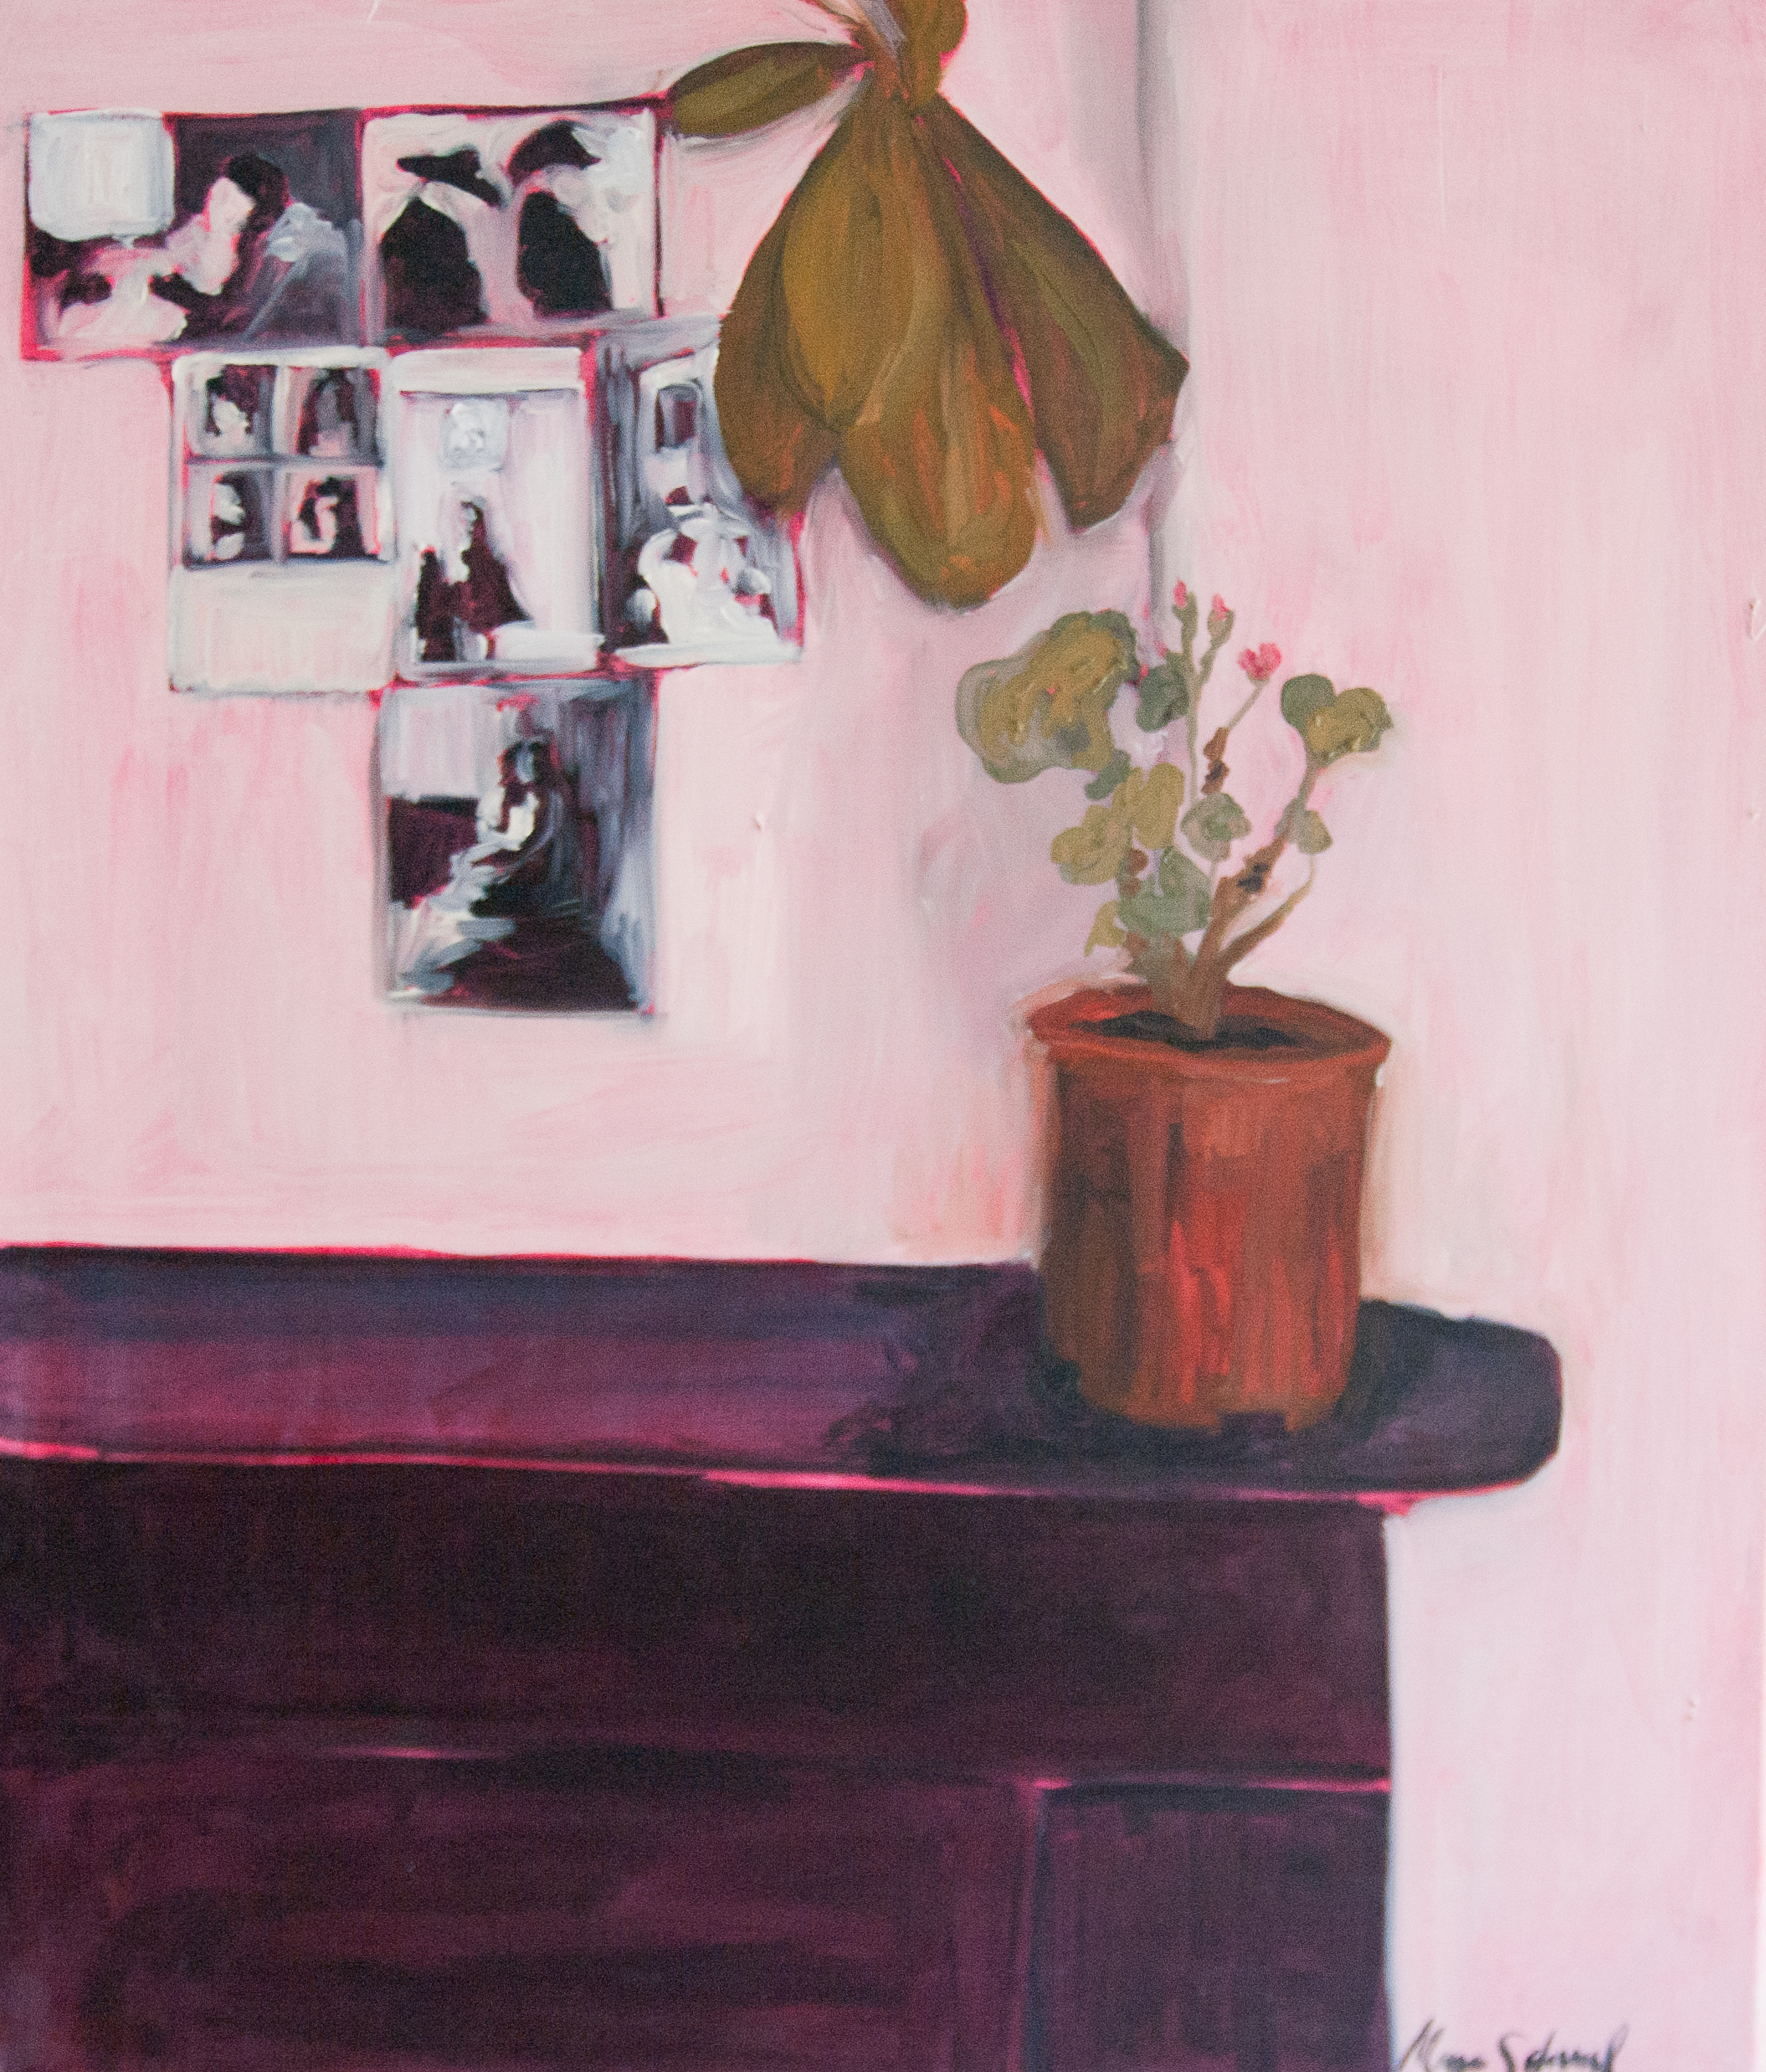 Still Life Day 45. 60x70cm.Oil, acrylic, and charcoal on canvas. 2015.